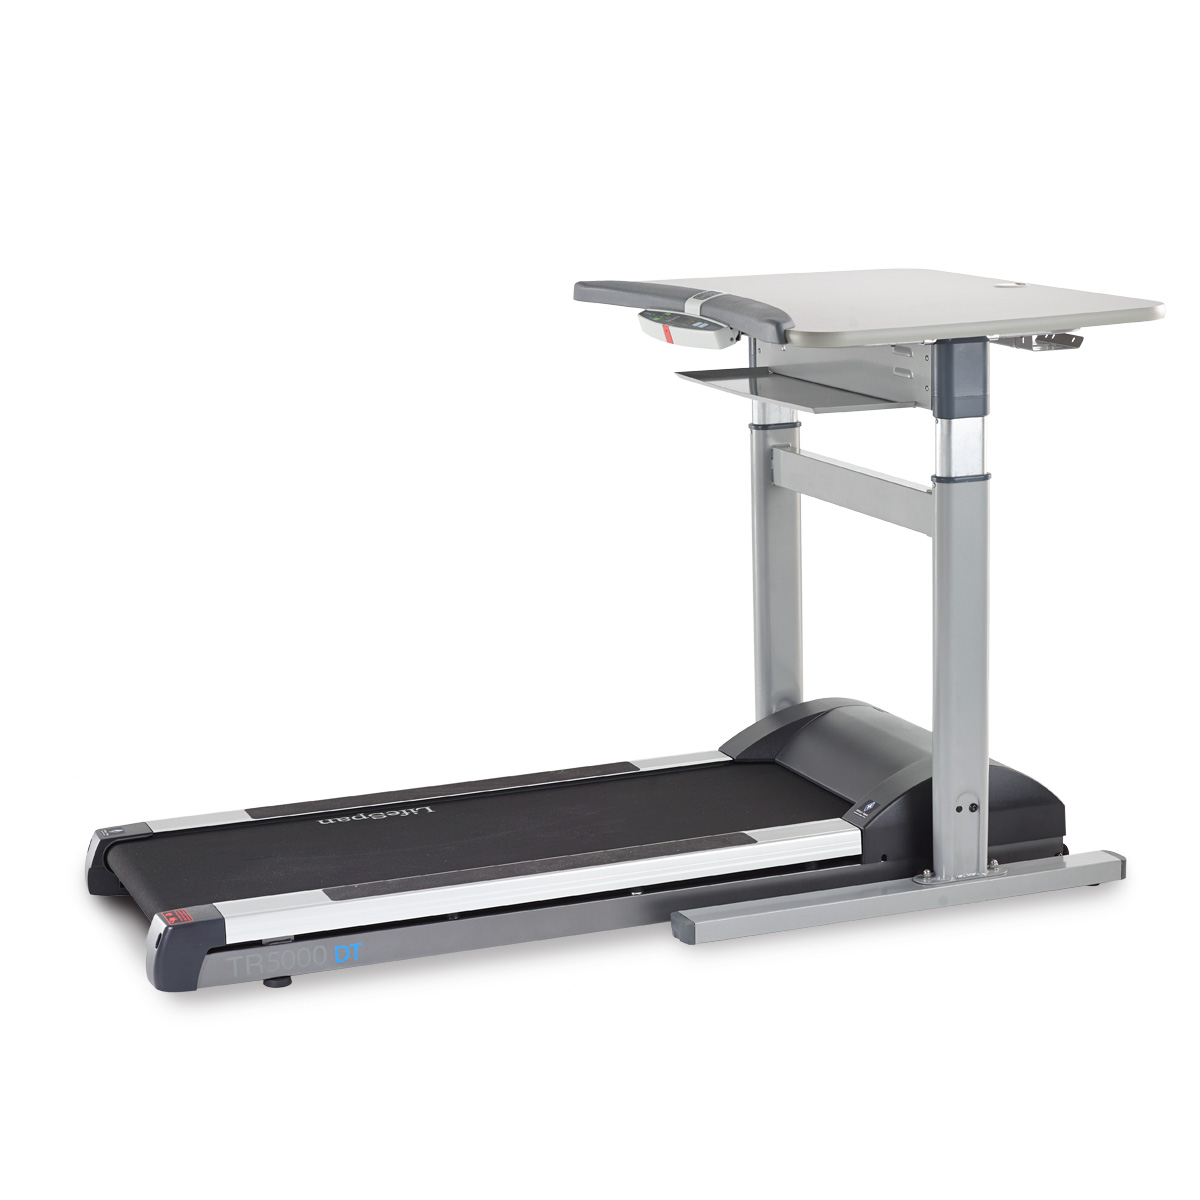 LifeSpan TR1200-DT5 Treadmill Desk - Reviews of Top 10 Exercise Equipment - Get Fit and Healthy!